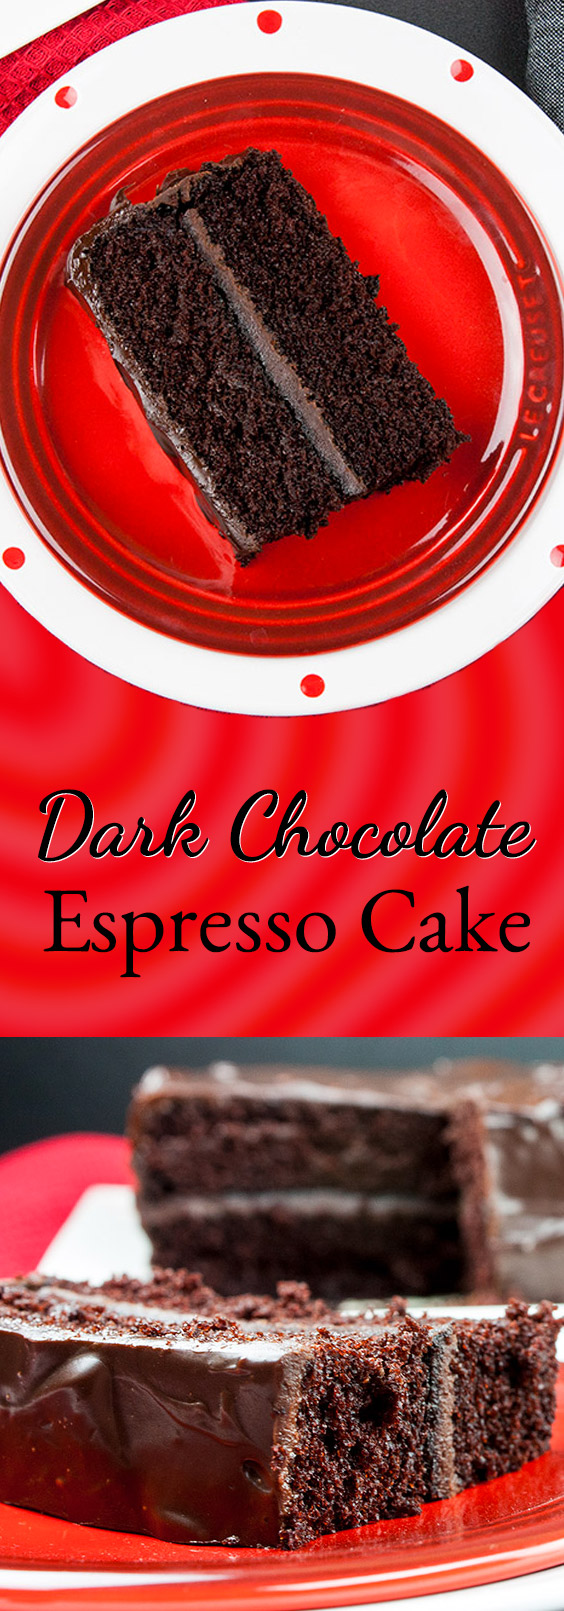 Dark Chocolate Espresso Cake - The BEST chocolate cake EVER! A dreamy, rich, moist dark chocolate cake topped with chocolate ganache. Absolutely scrumptious! #dessert #chocolate #cake